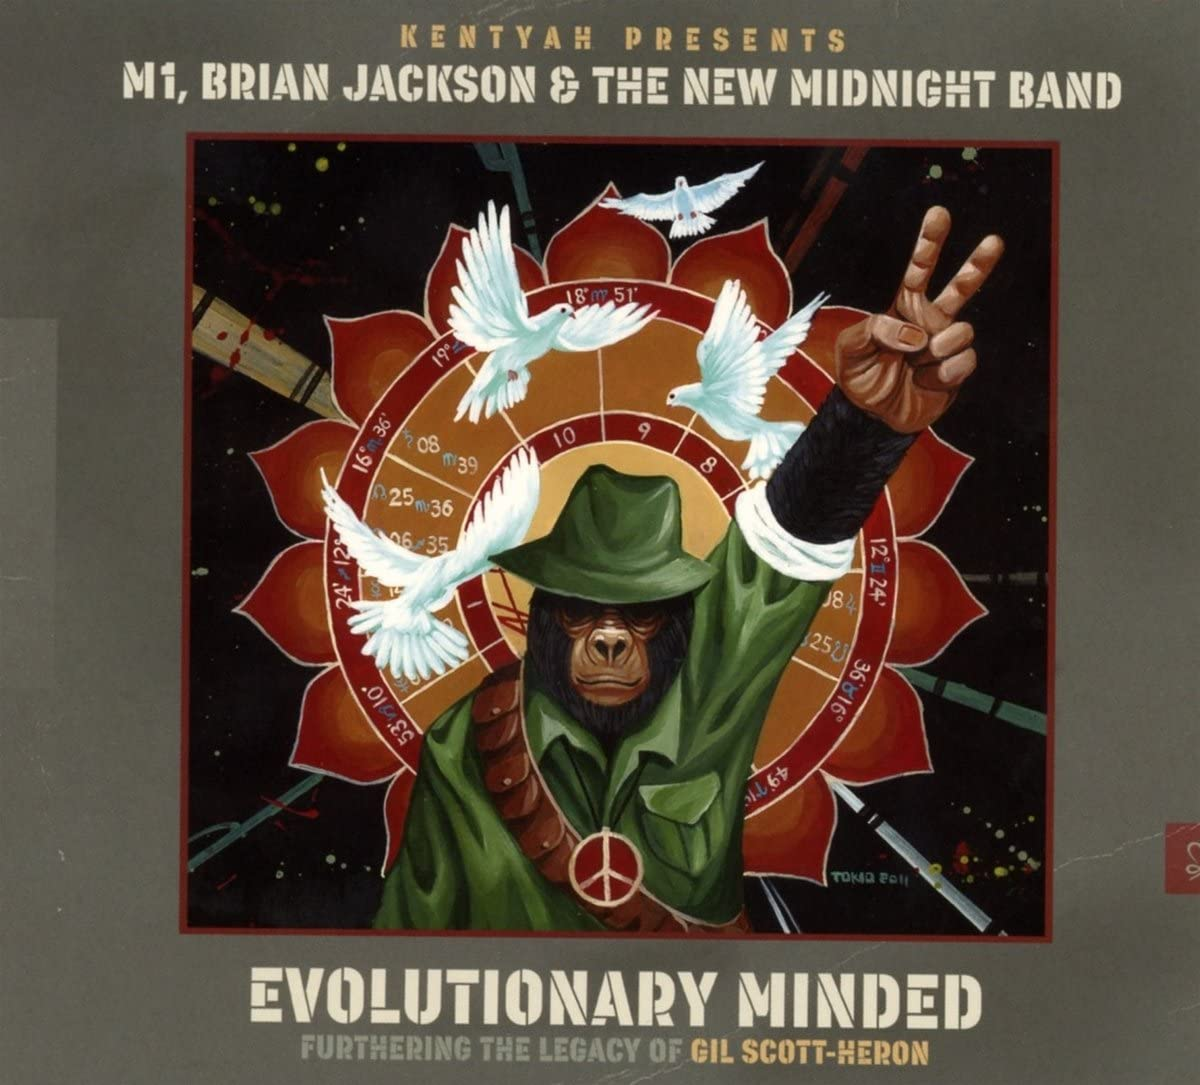 Review of Kentyah Presents M1, Brian Jackson: Evolutionary Minded: Furthering The Legacy Of Gil Scott-Heron